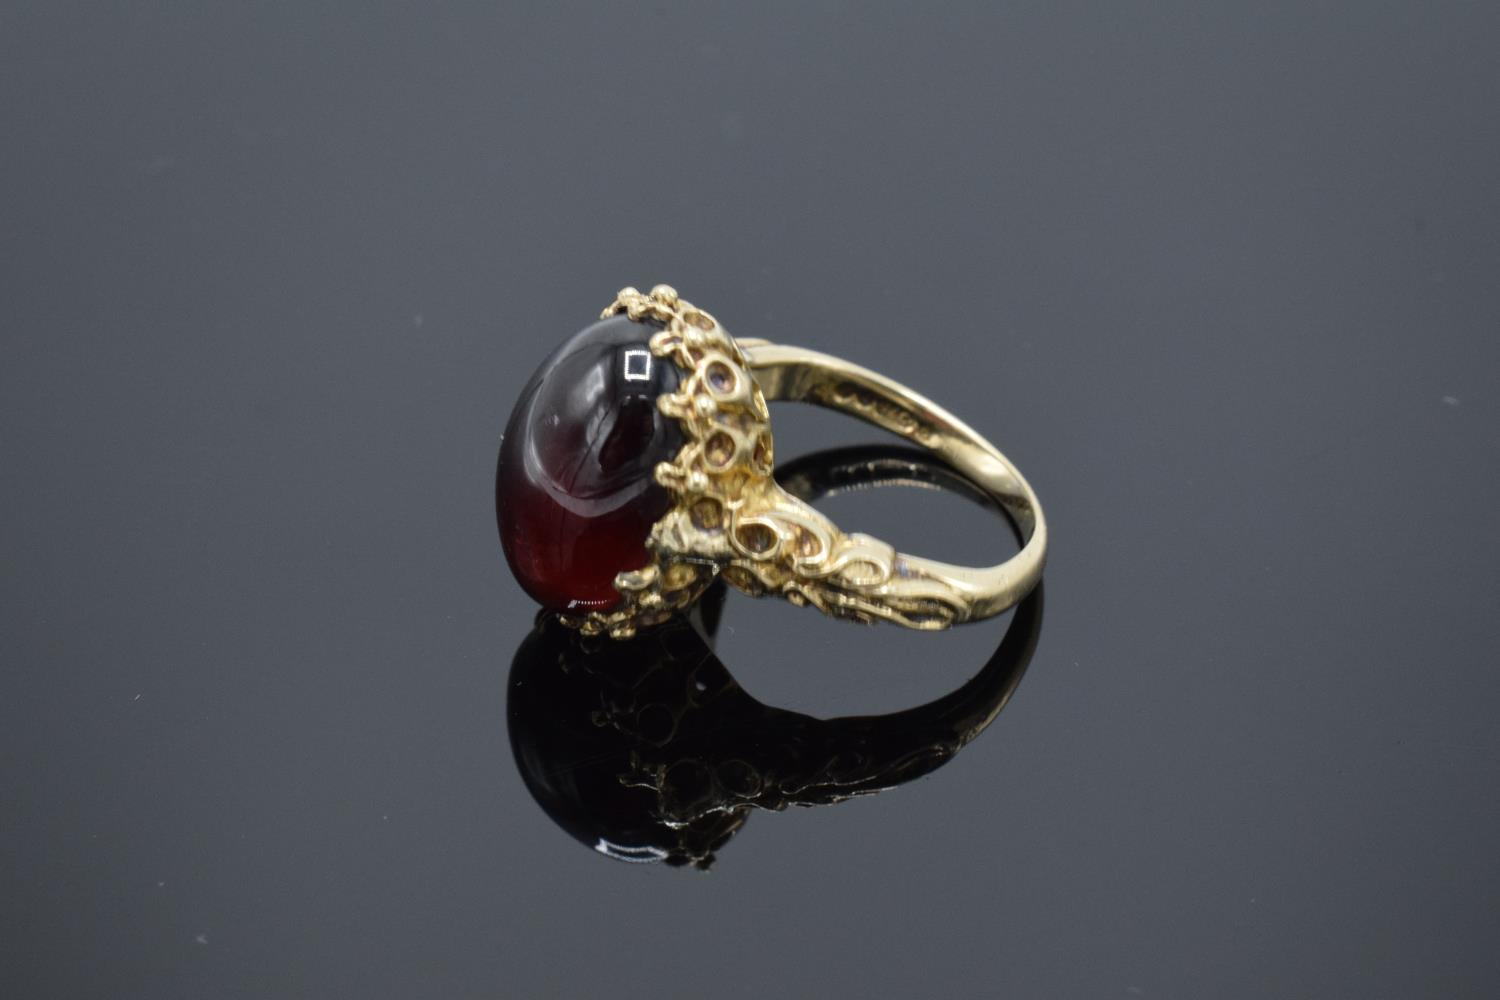 A hallmarked 9ct gold ornate ladies ring set with a polished cabochon stone, gross weight 5.5 grams. - Image 2 of 4